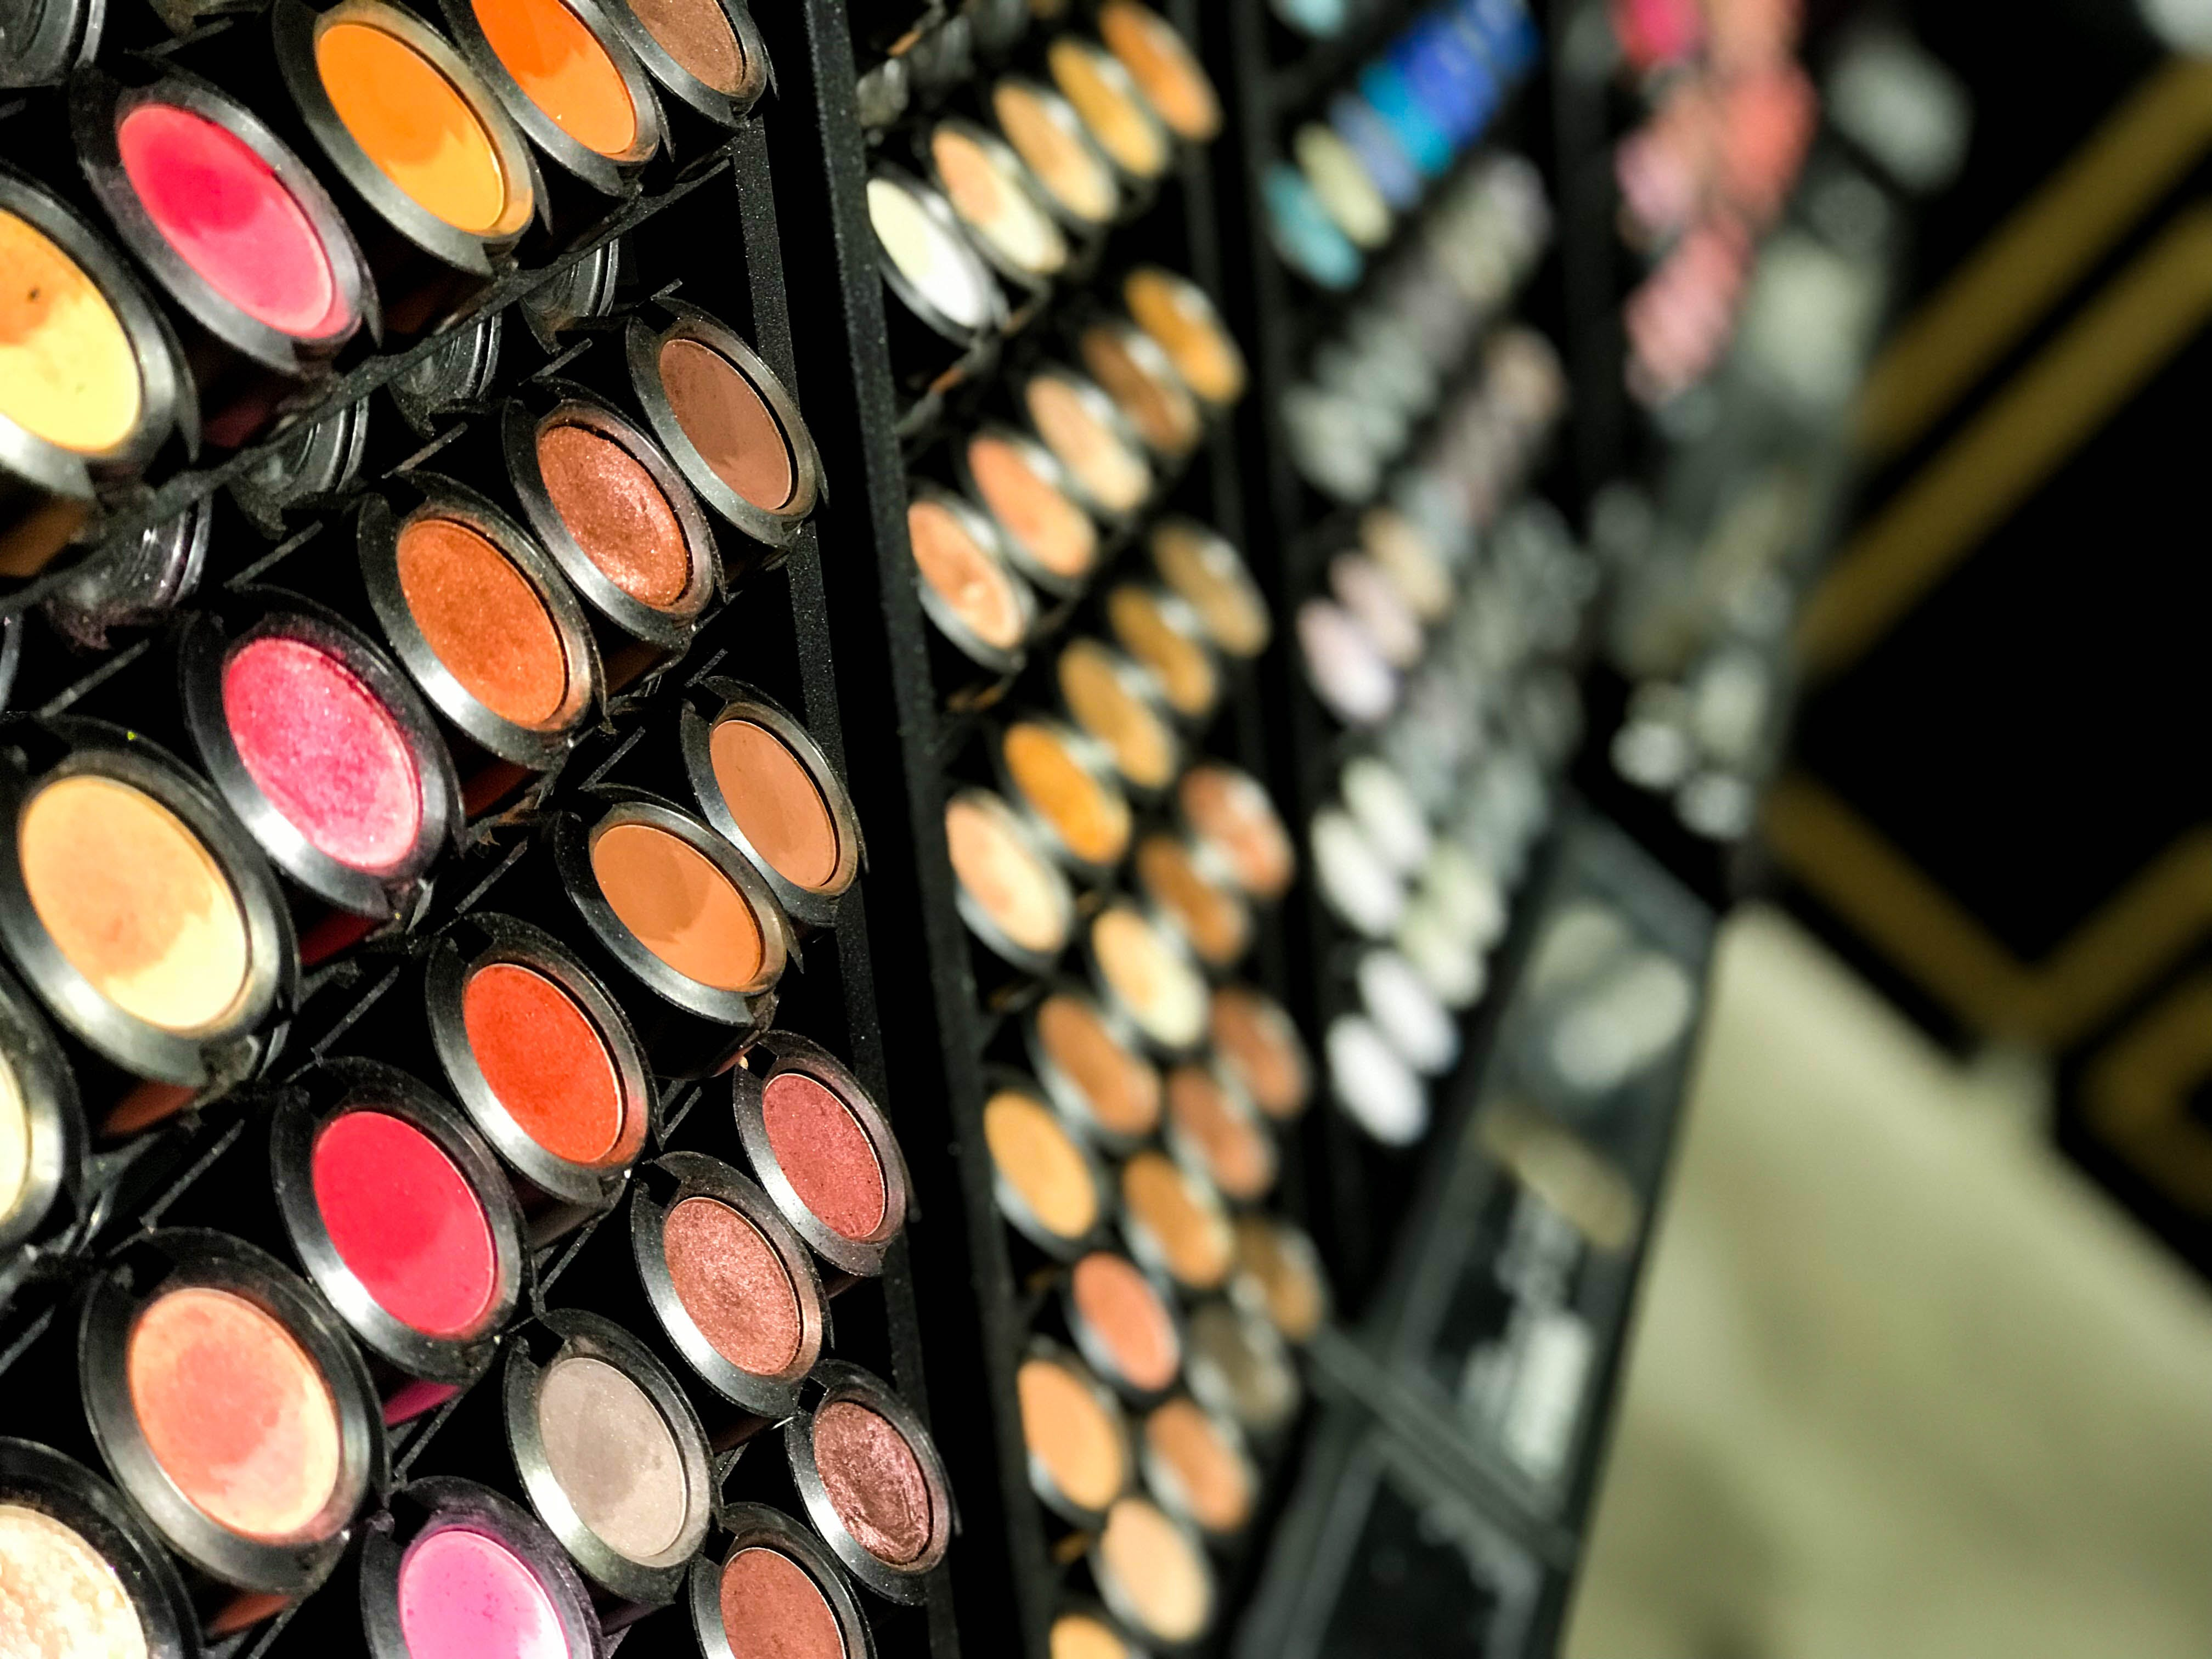 12 Quick & Easy Tips to Score Free MAC Makeup - The Krazy Coupon Lady